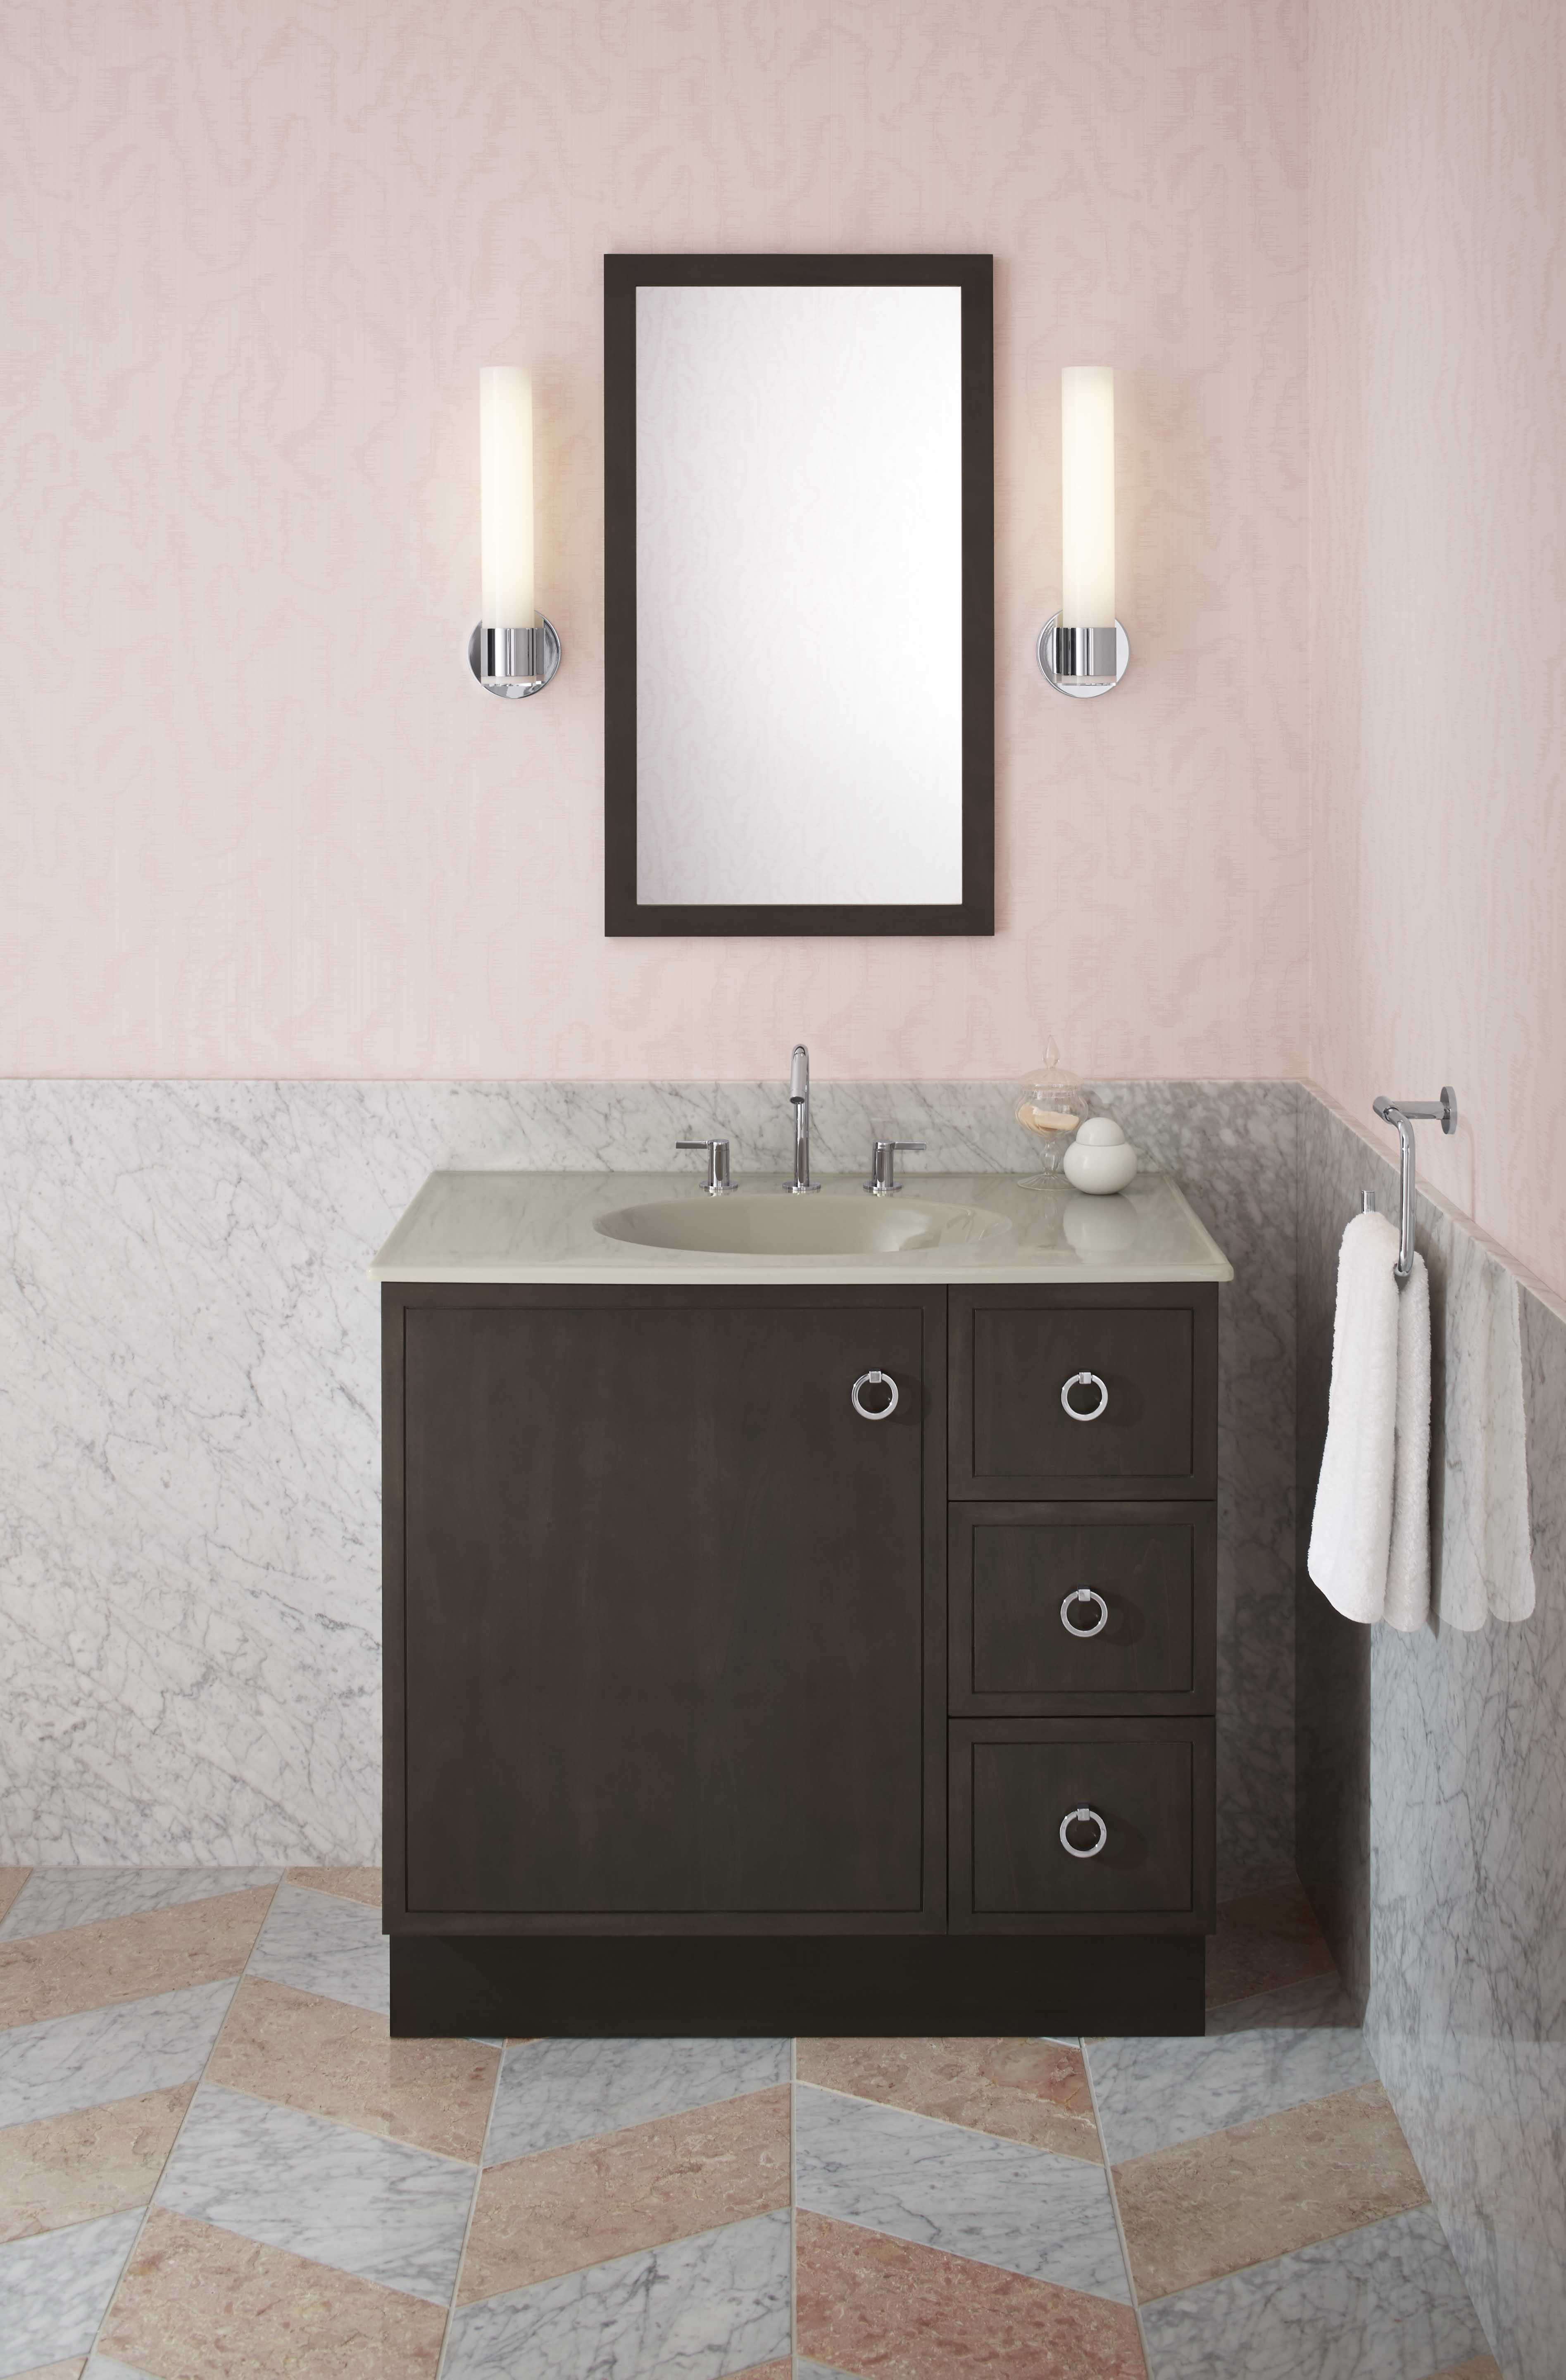 Jute® Vanity     Jacquard Mirror     Loure® Faucet     Matching the color of the vanity and mirror can provide a cohesive look.